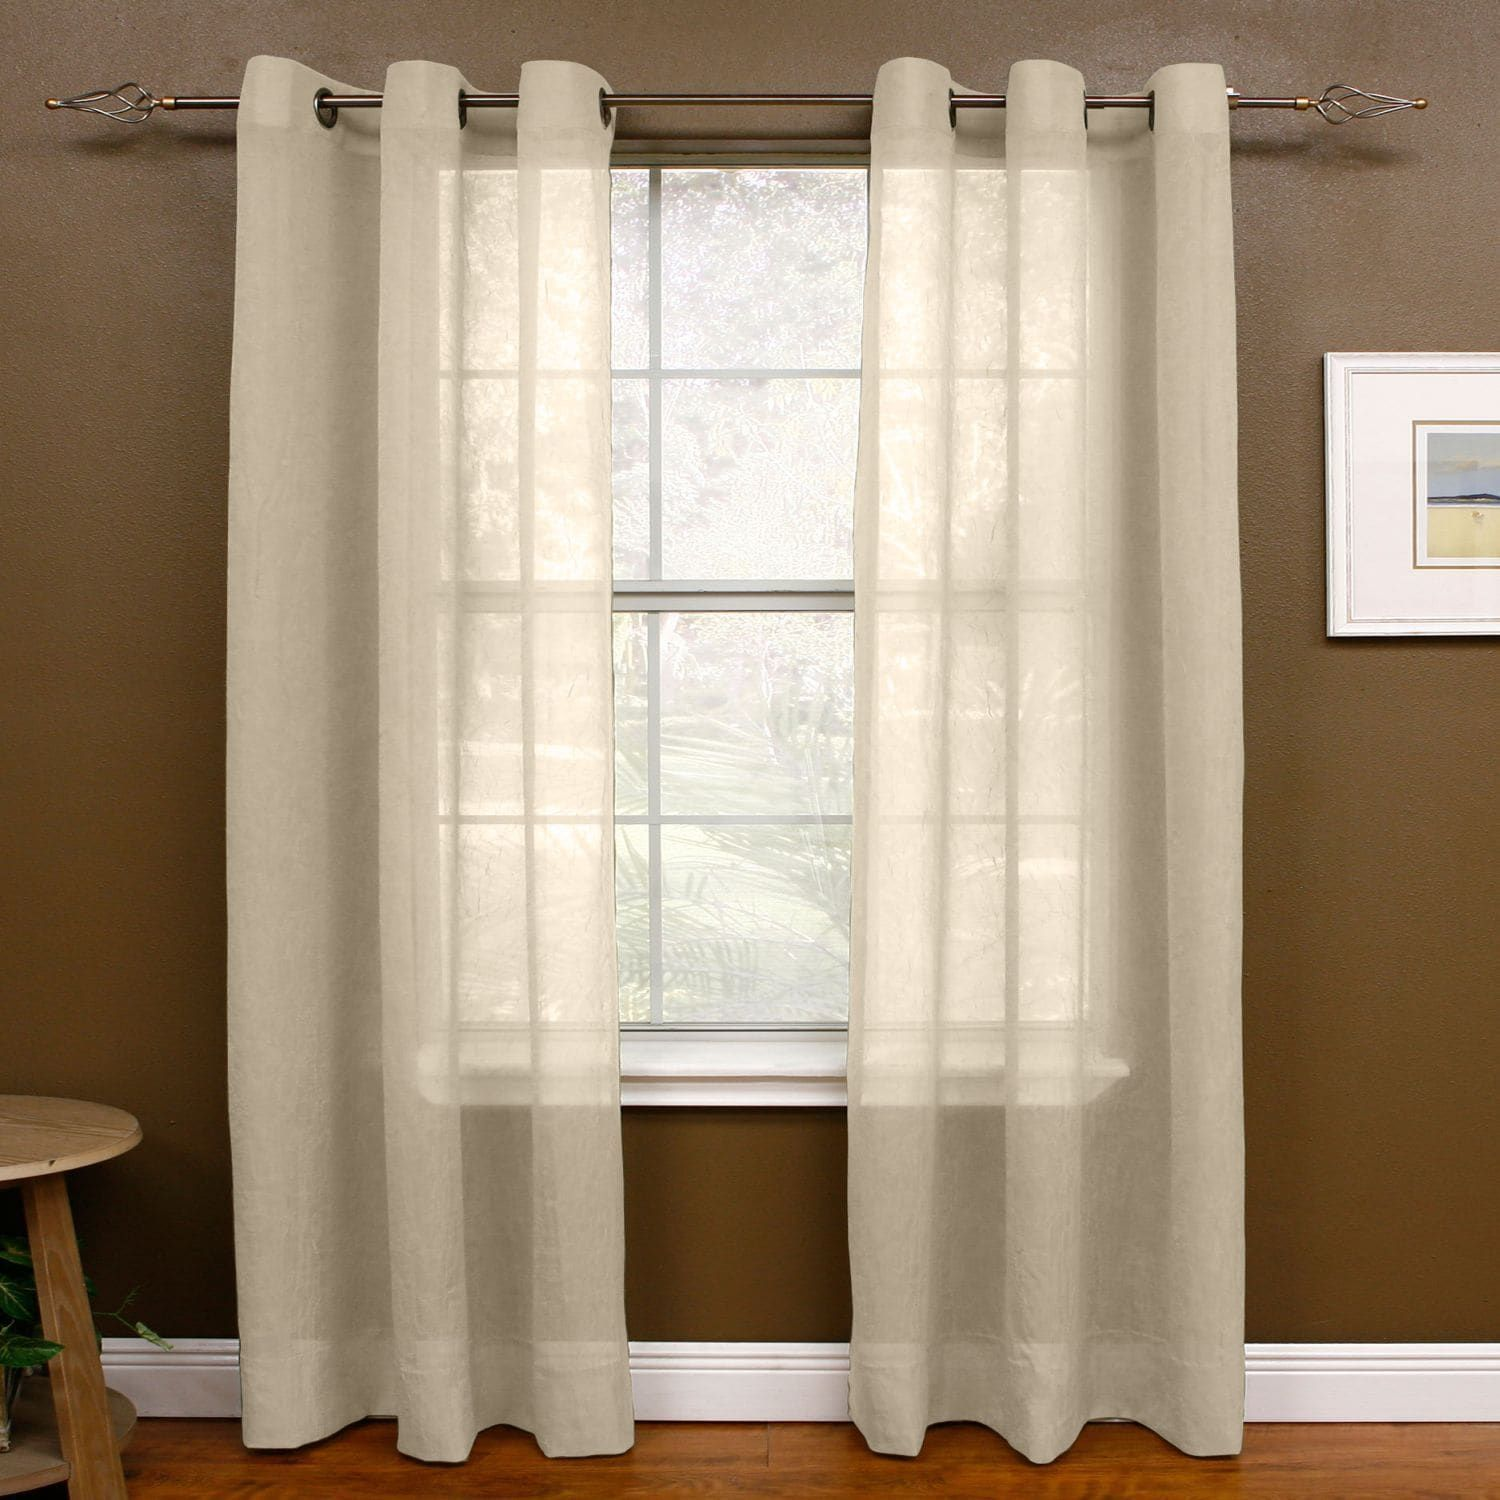 Online Shopping Bedding Furniture Electronics Jewelry Clothing More Curtains 1 Panel Curtains Curtains Kohls